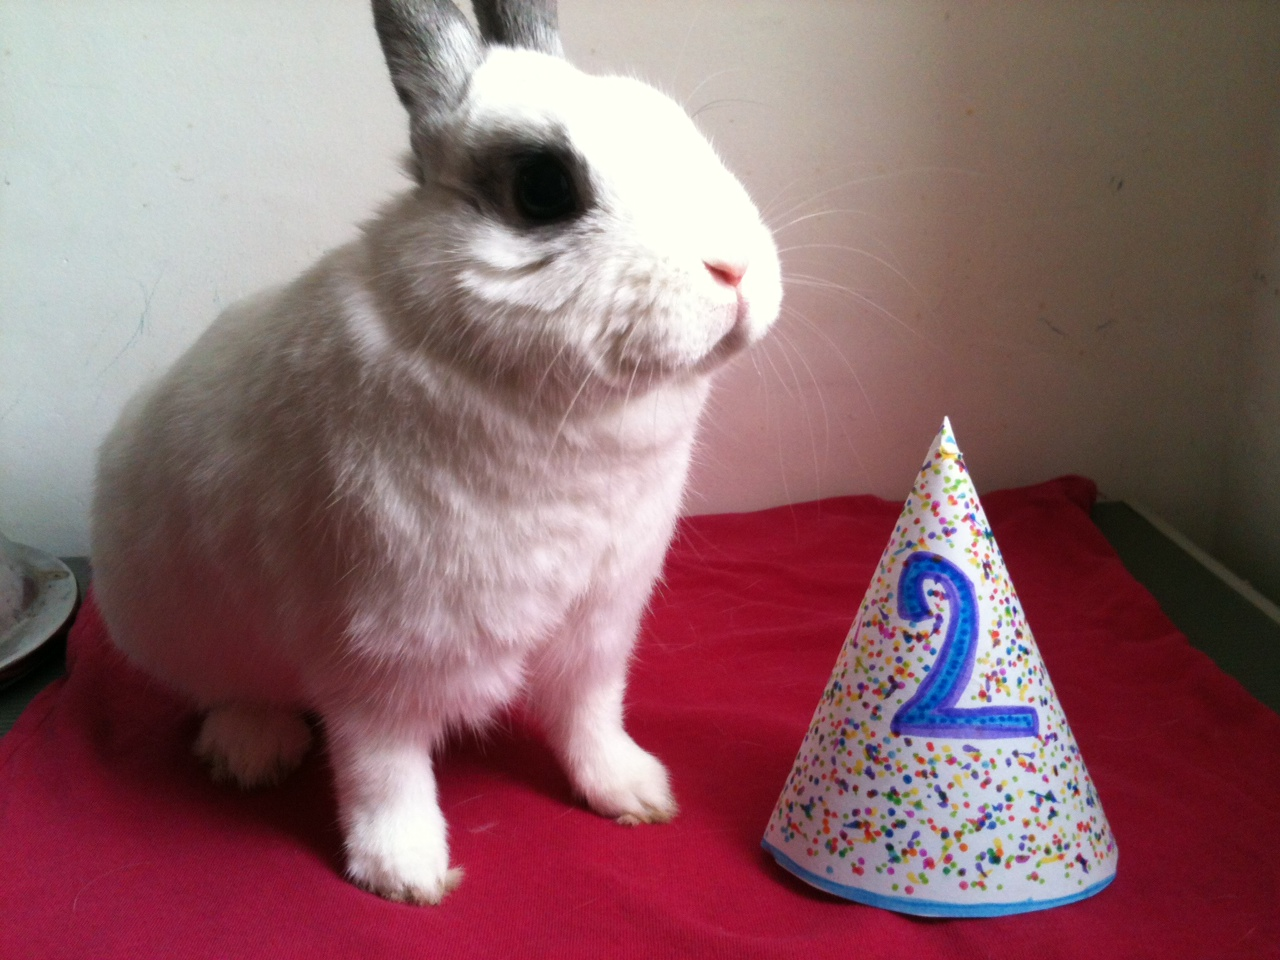 Bunny Gets a Special Birthday Hat Made for Him